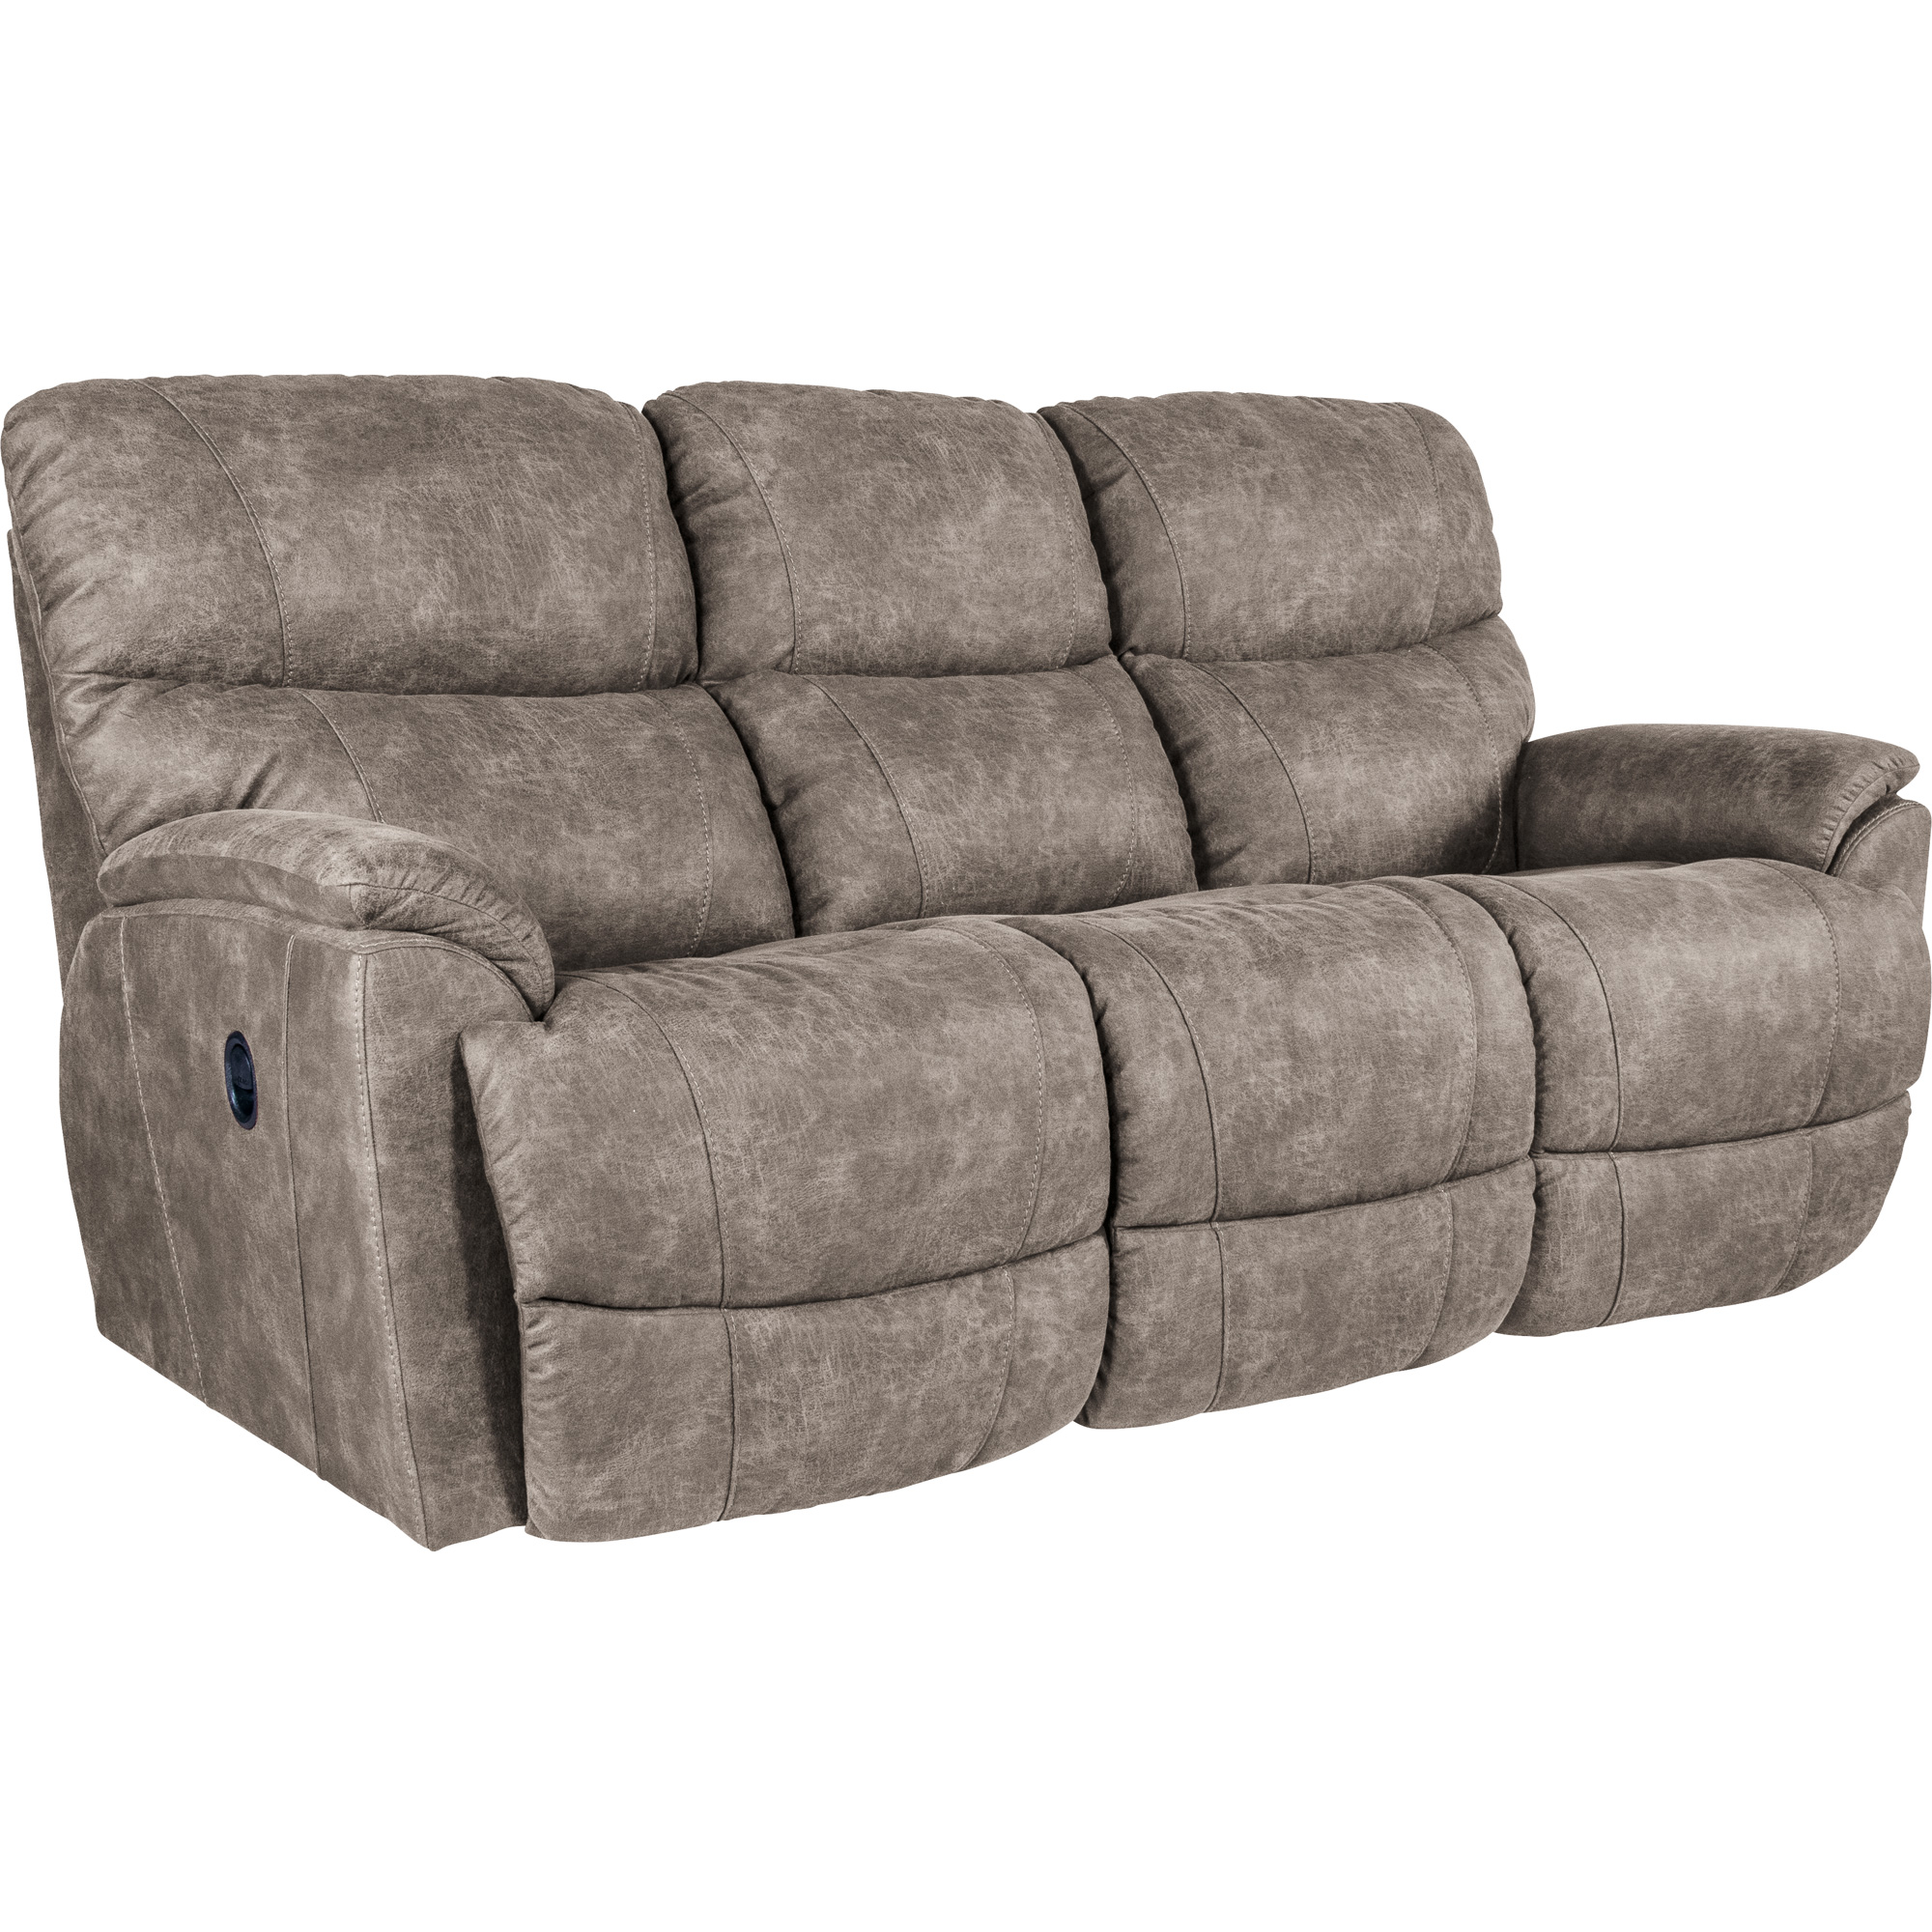 La-Z-Boy | Trouper Sable Reclining Sofa